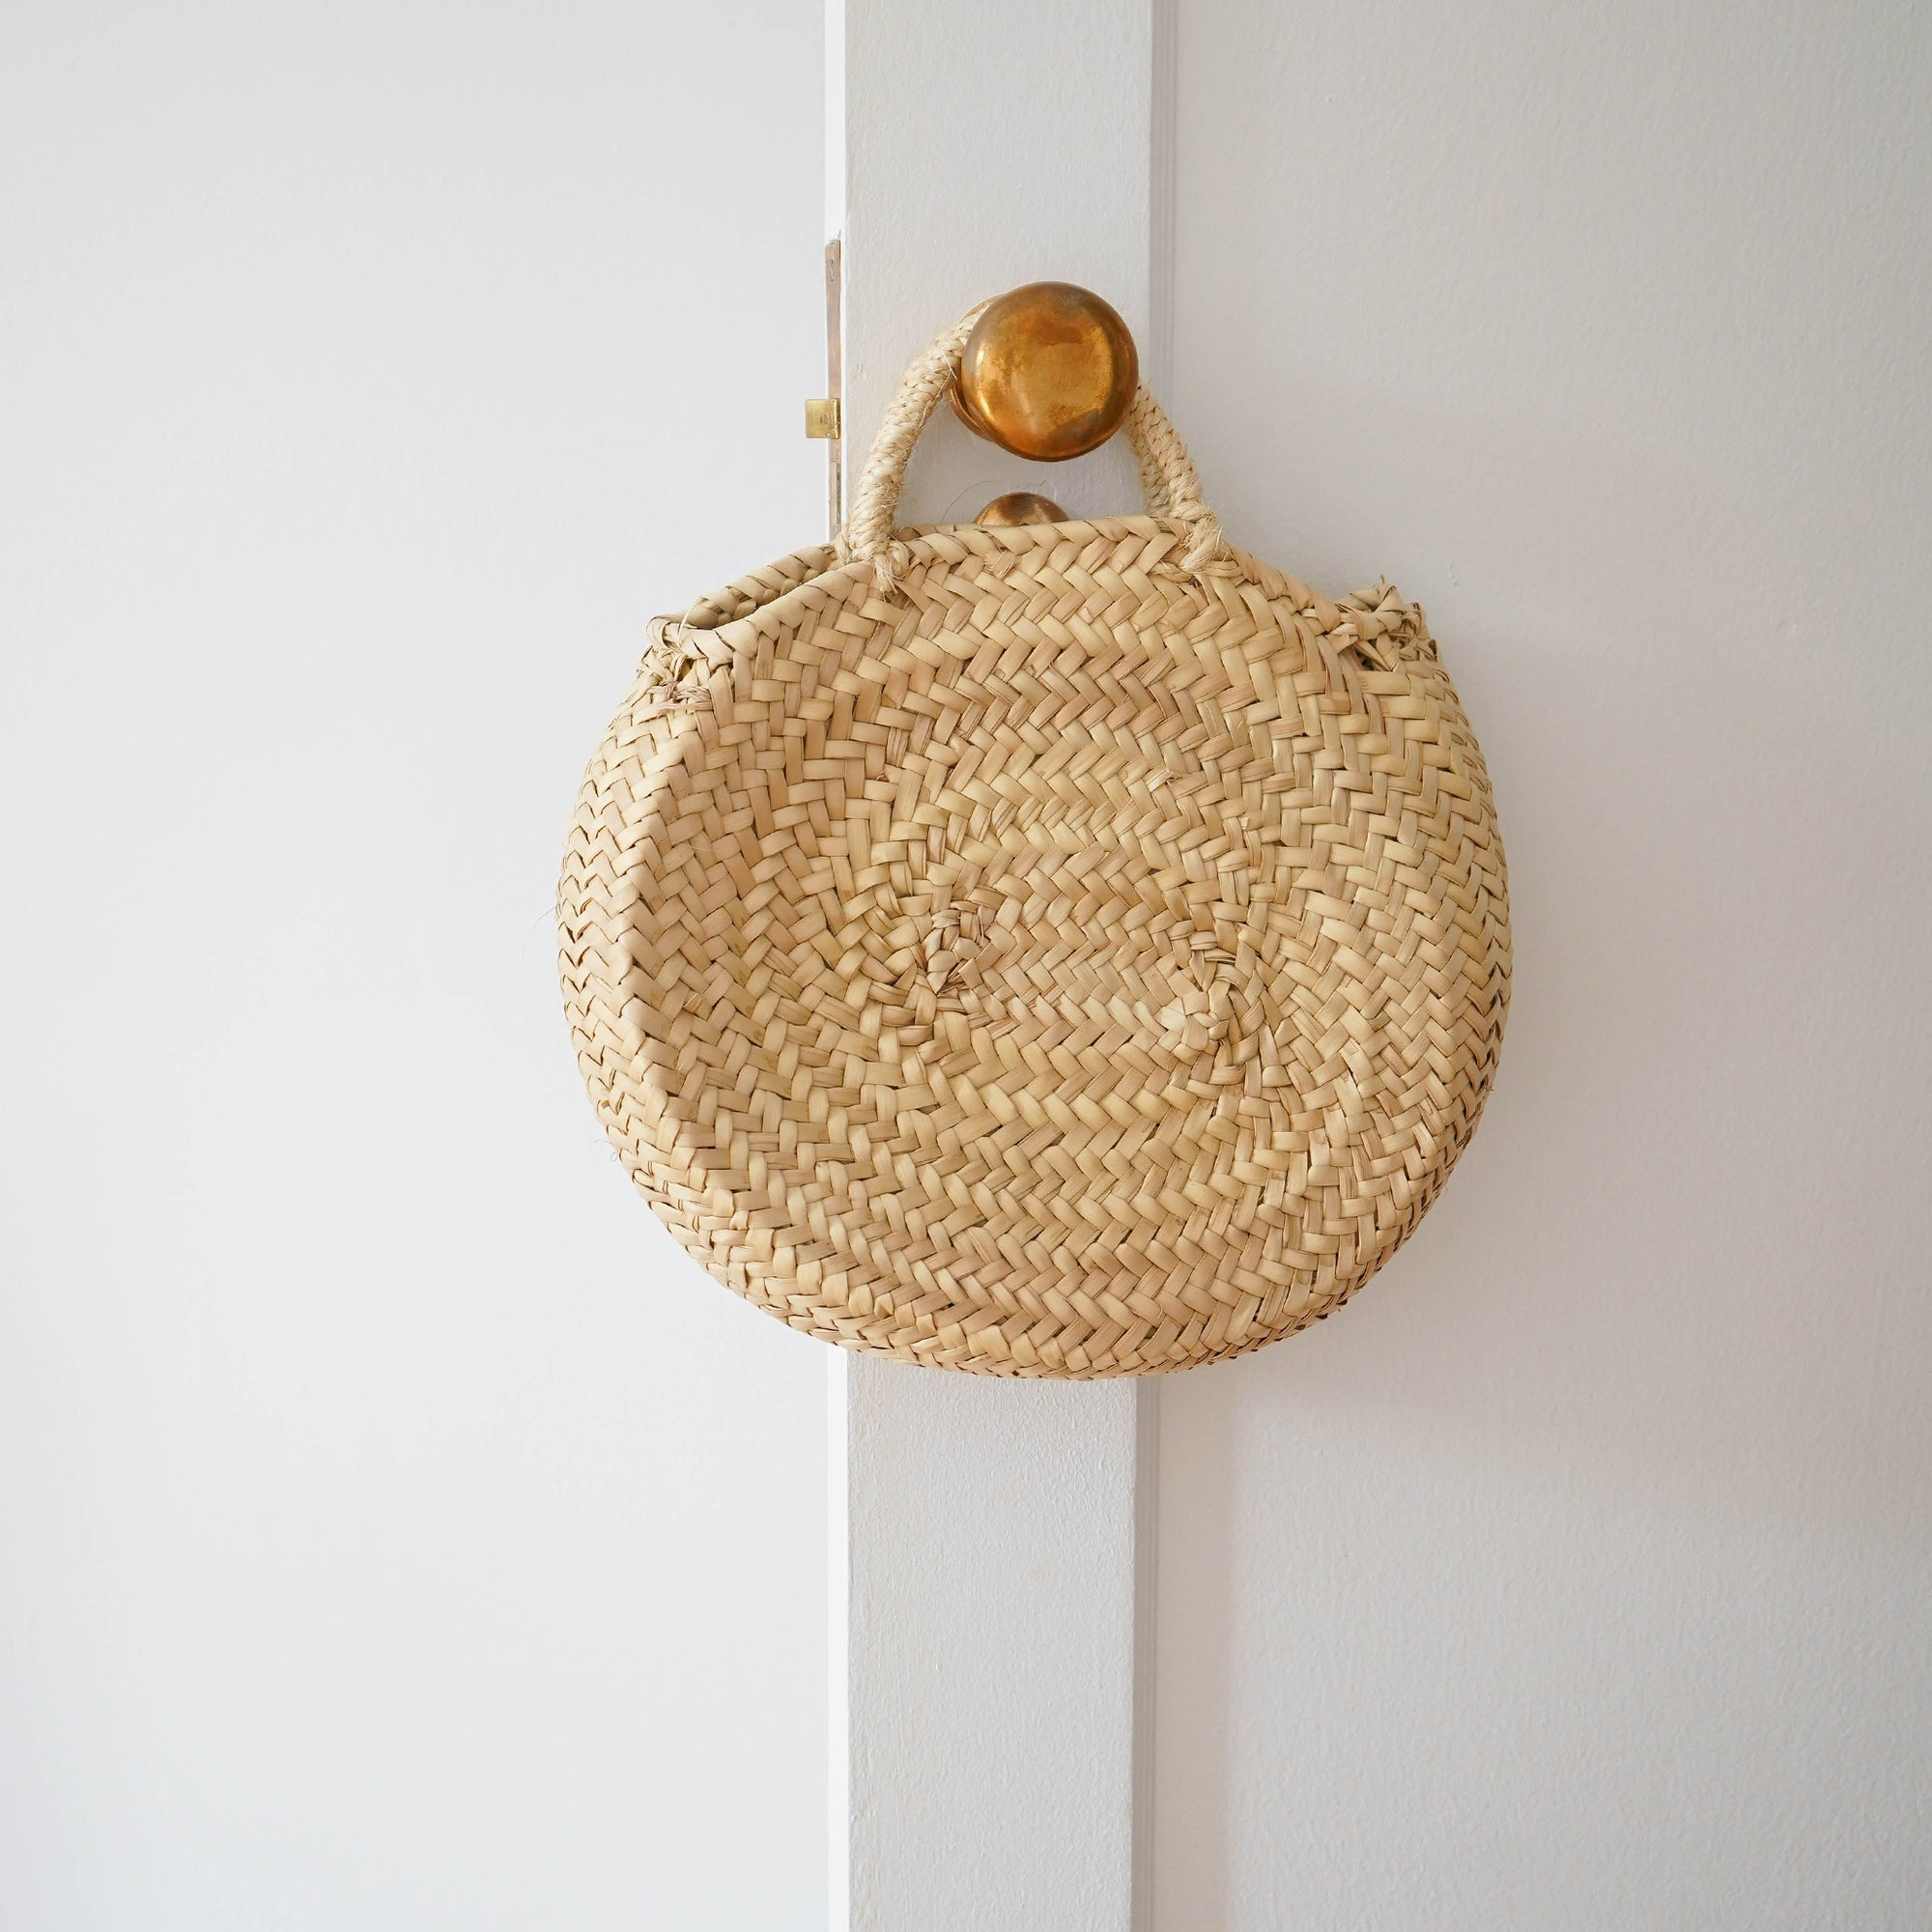 Small oval straw bag